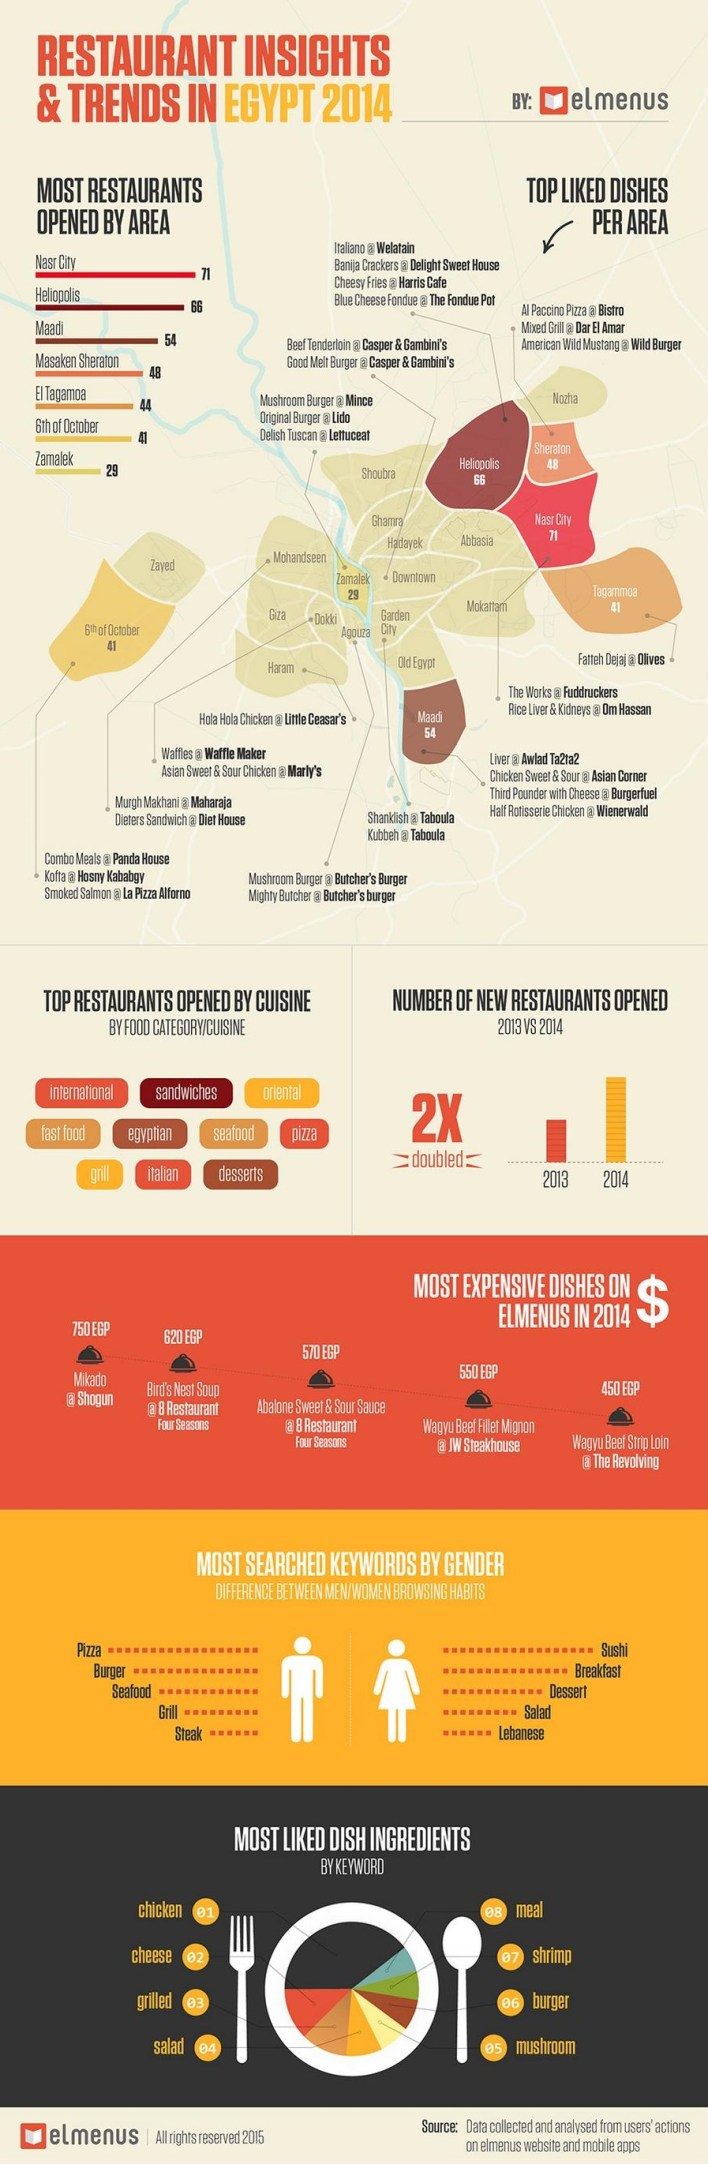 Restaurant Insights & Trends in Egypt - 2014 by elmenus com